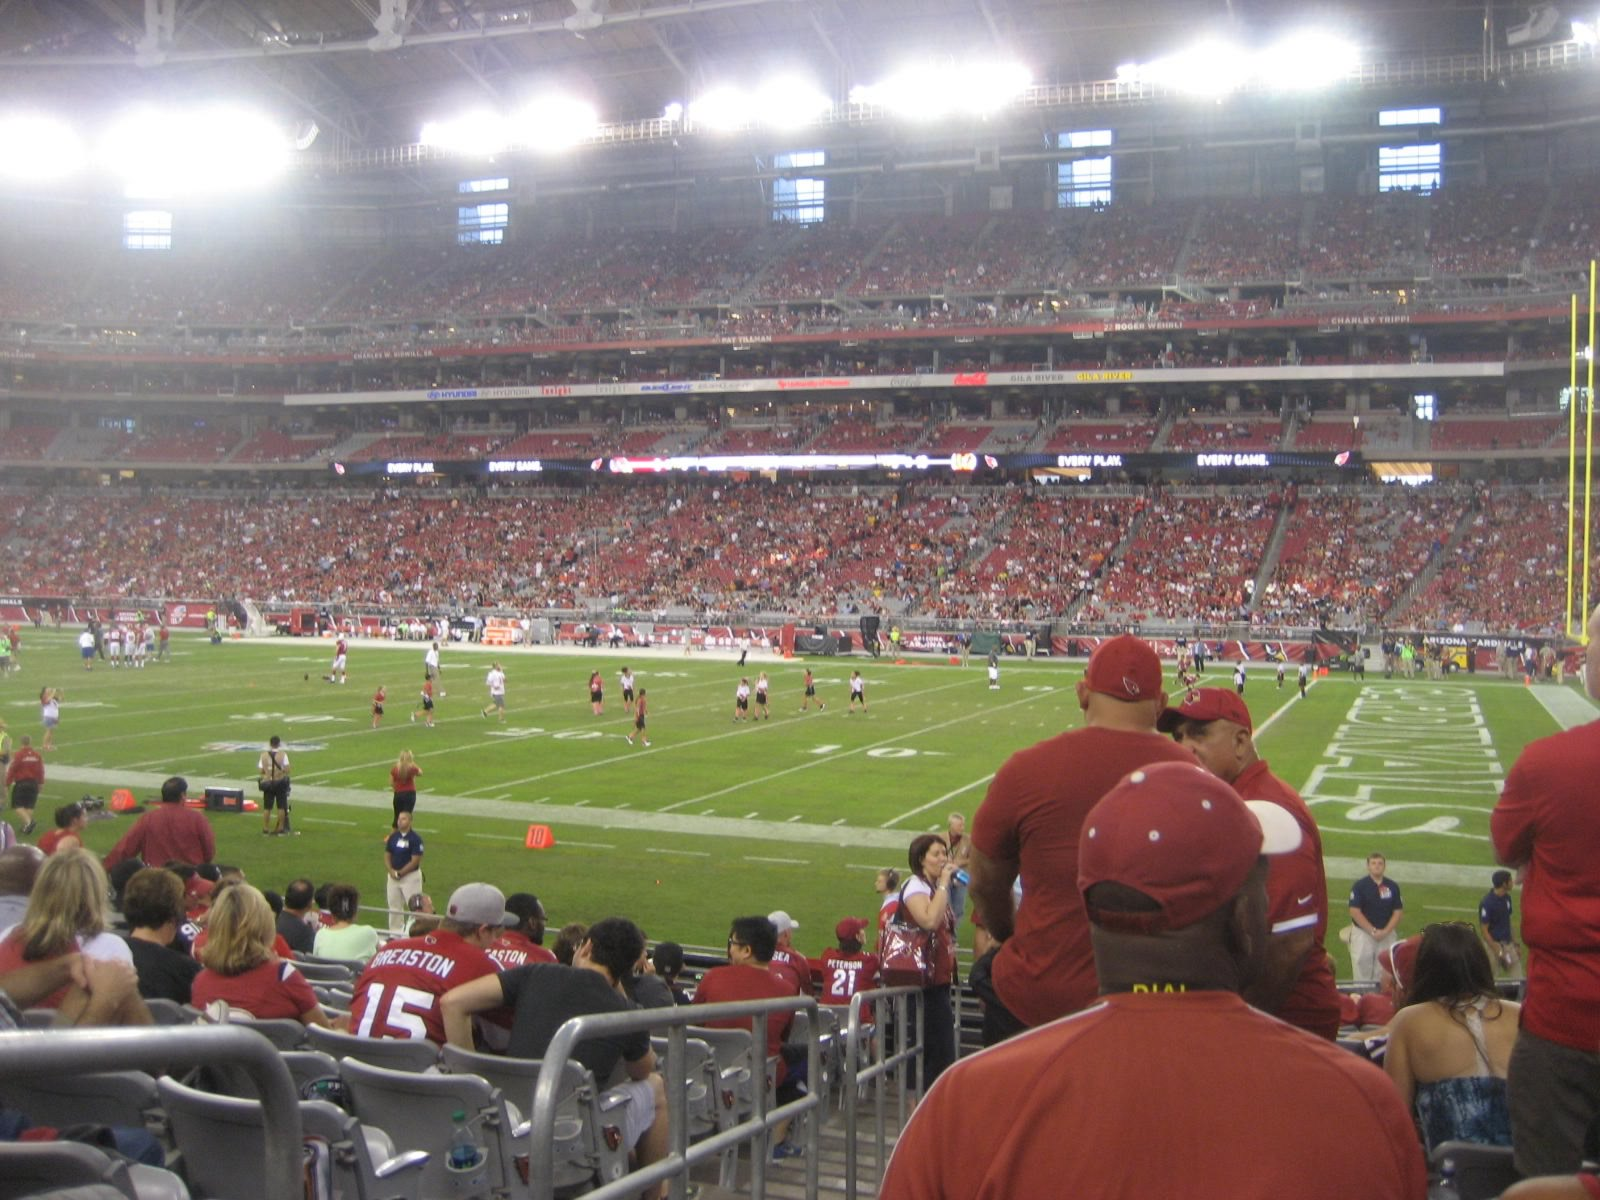 Section 103, Row 14